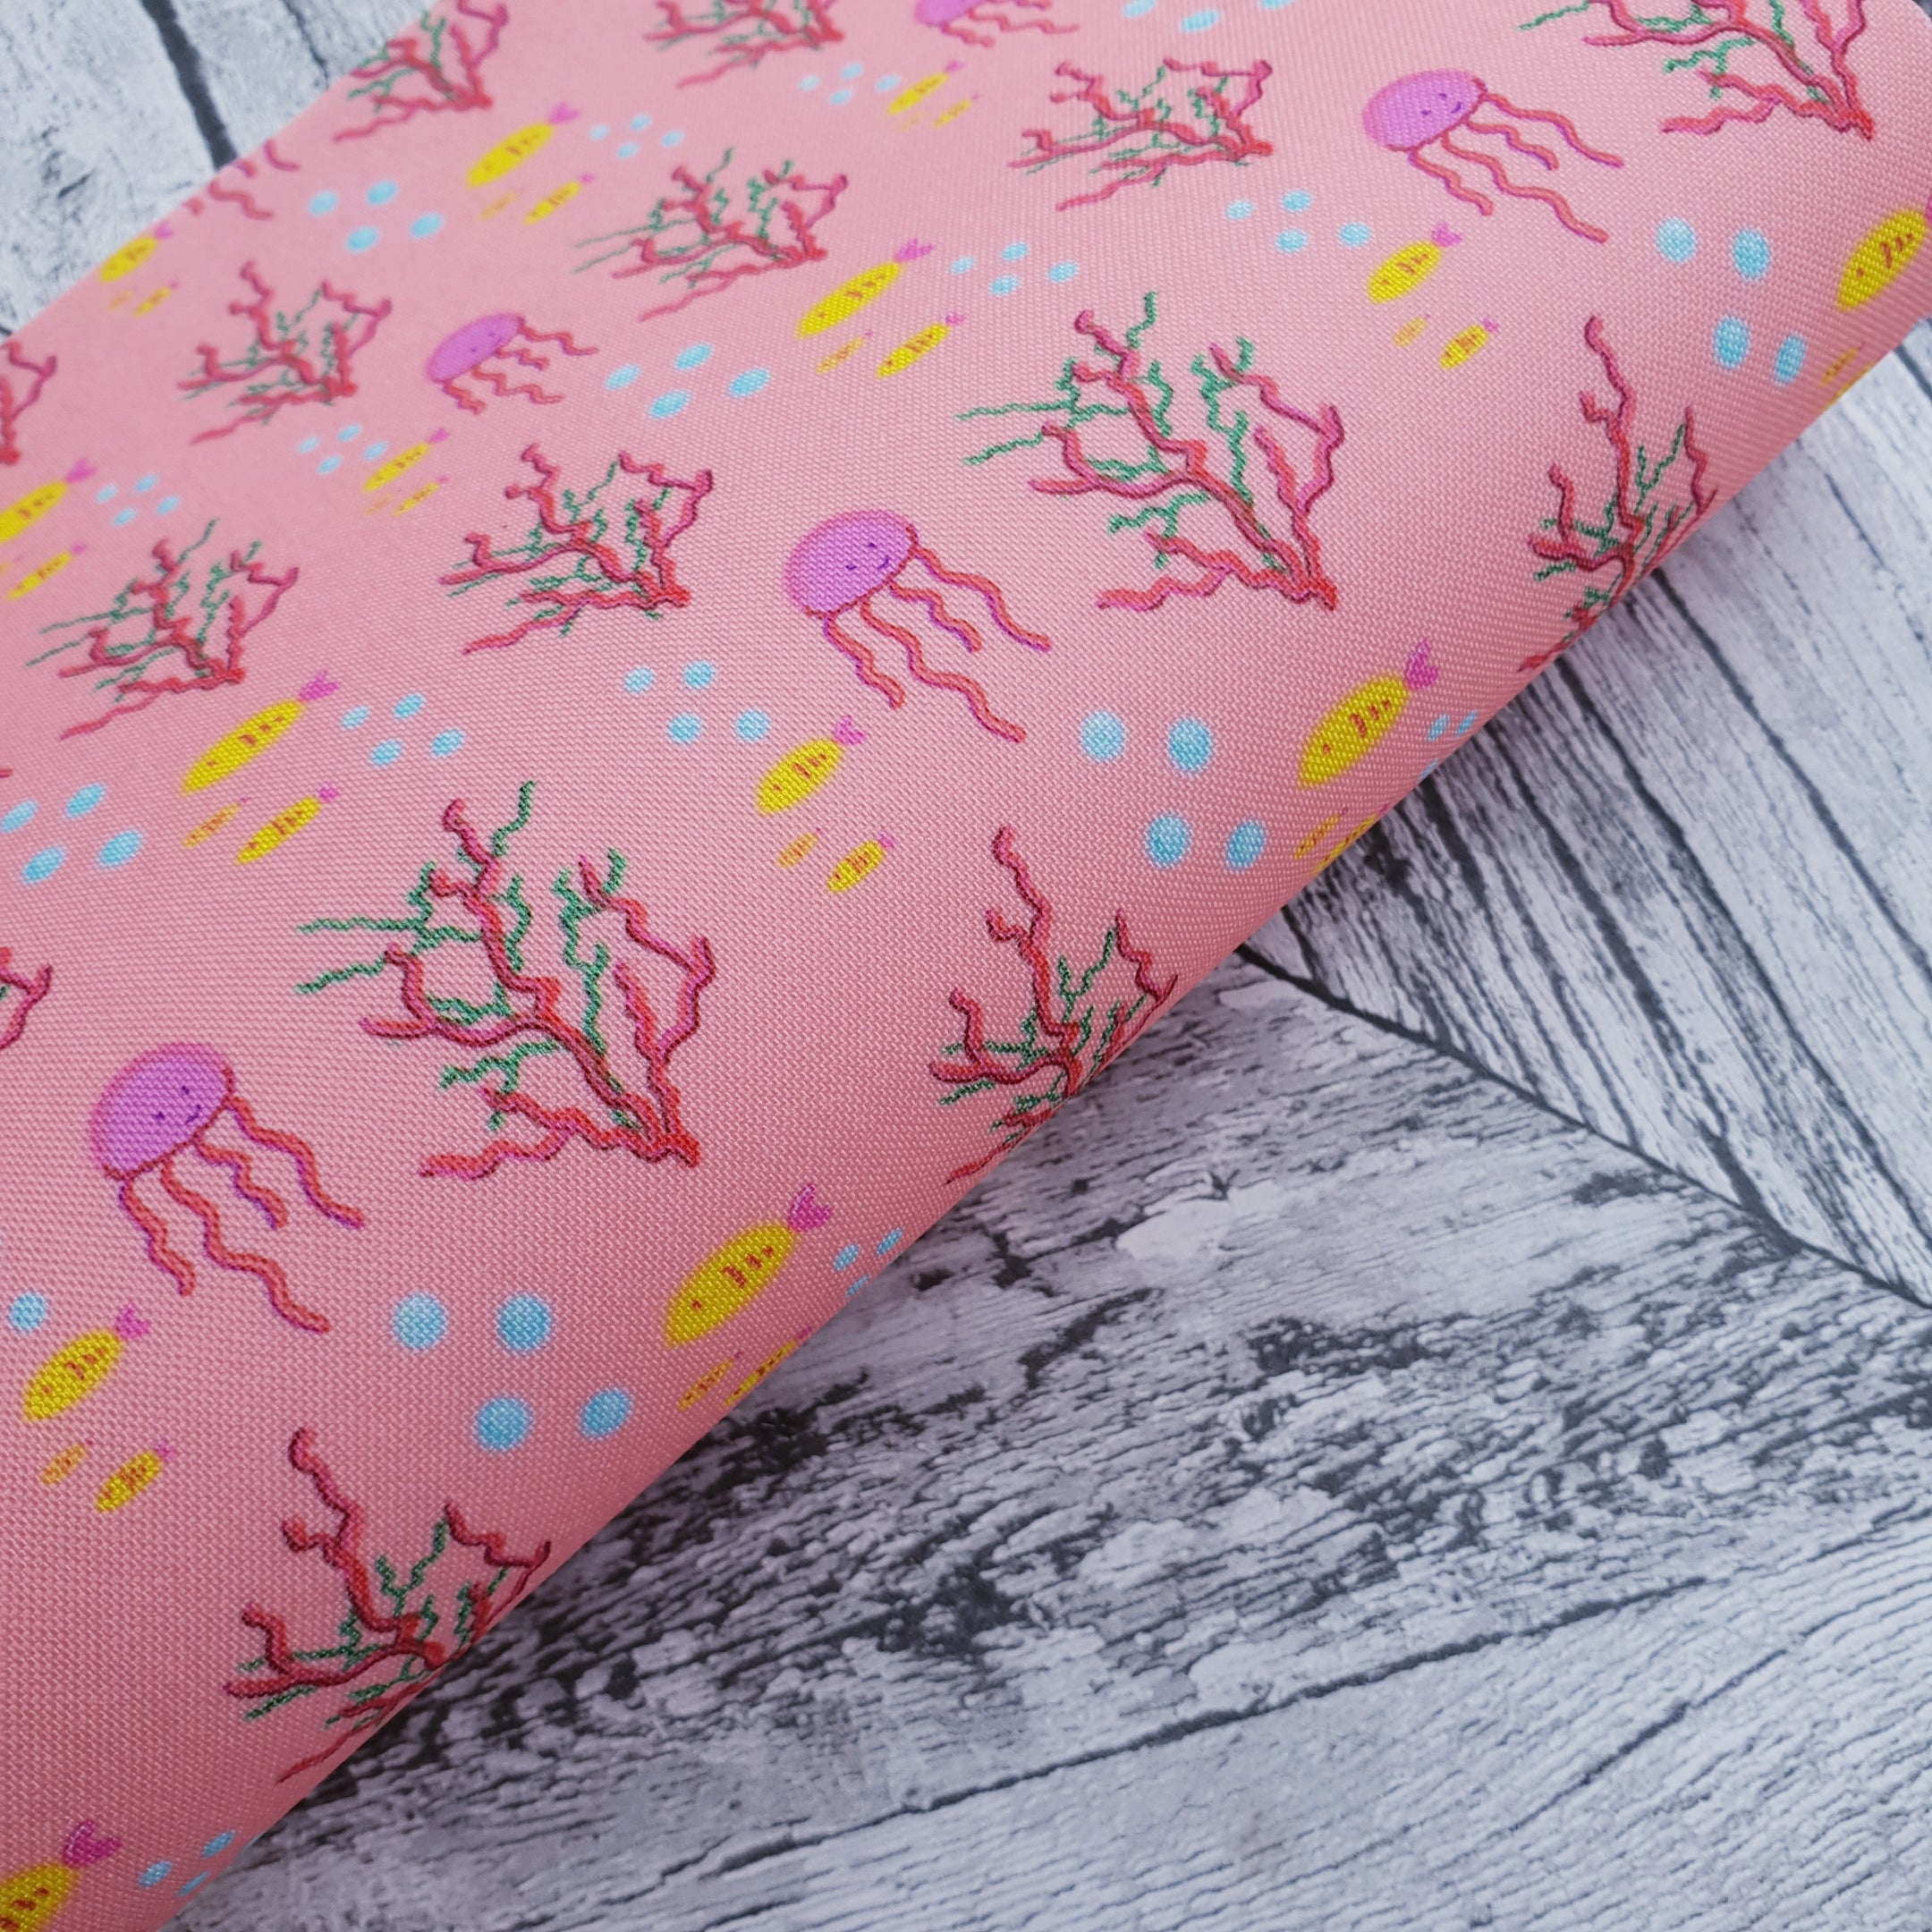 Under the Sea - Peach - Felt Backed Fabric - Honey Bee Craft Store -